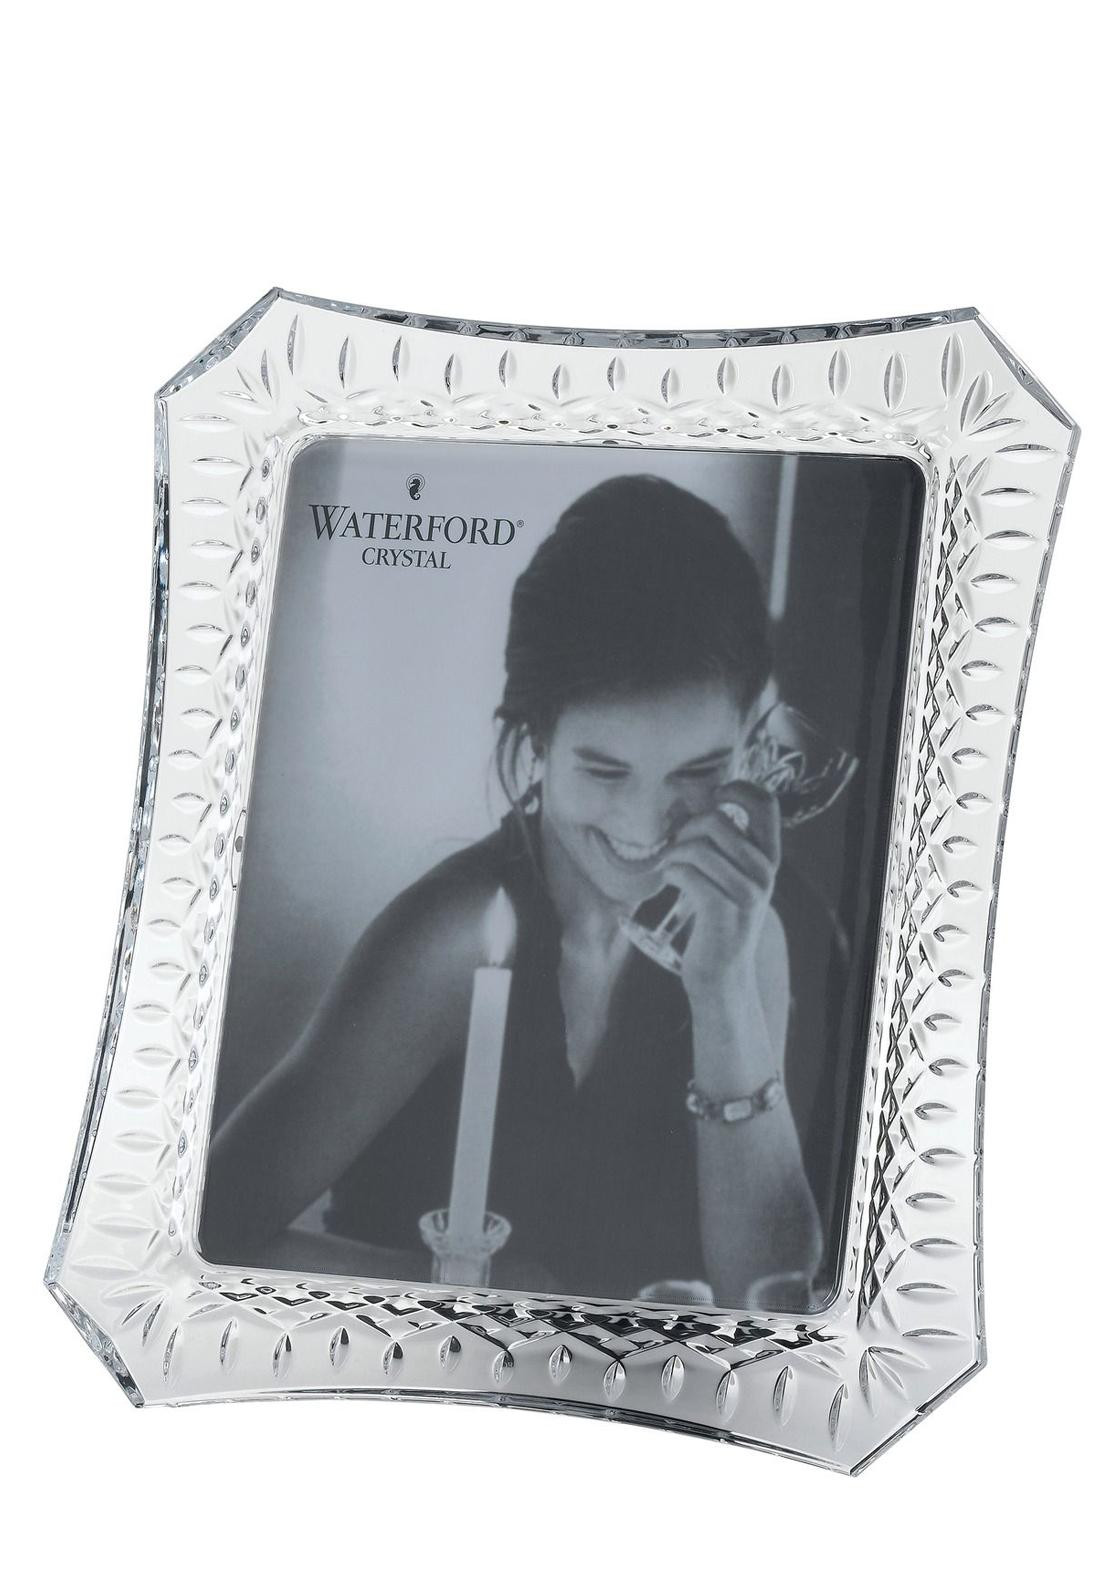 Waterford Crystal Lismore Photo Frame, 8 x 10 inches